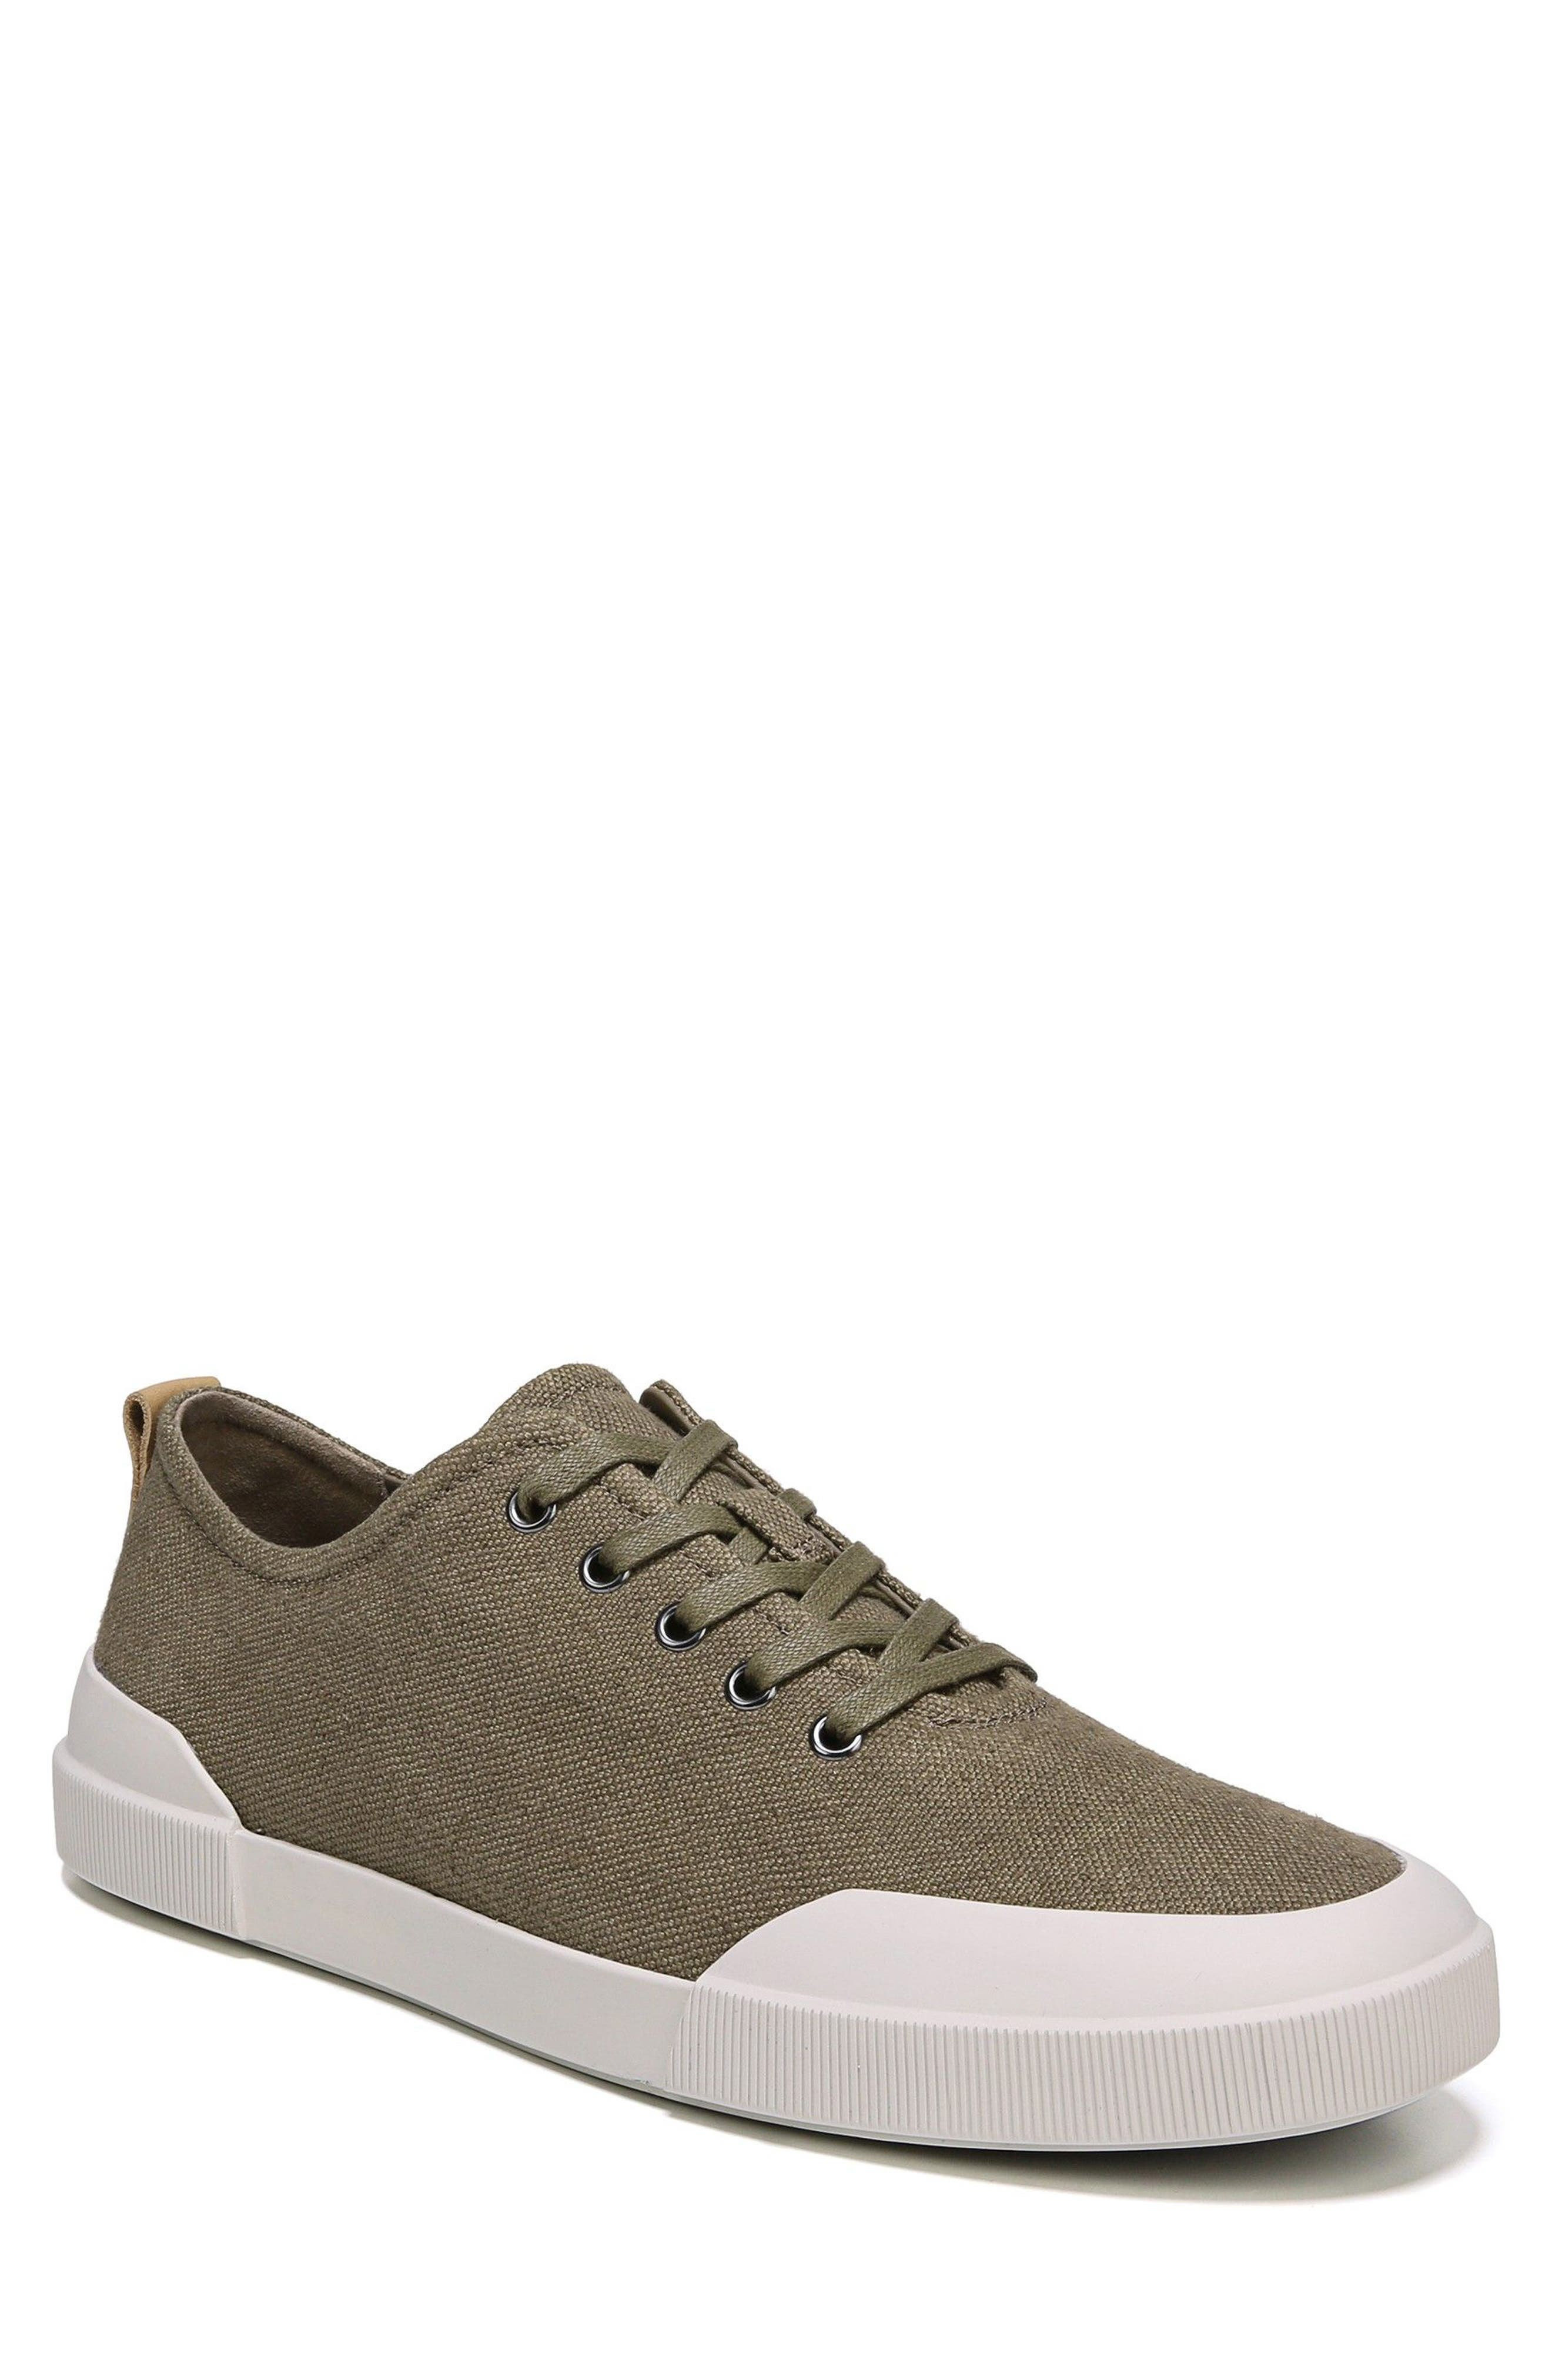 Victor Low Top Sneaker,                             Main thumbnail 1, color,                             Flint/ Cuoio